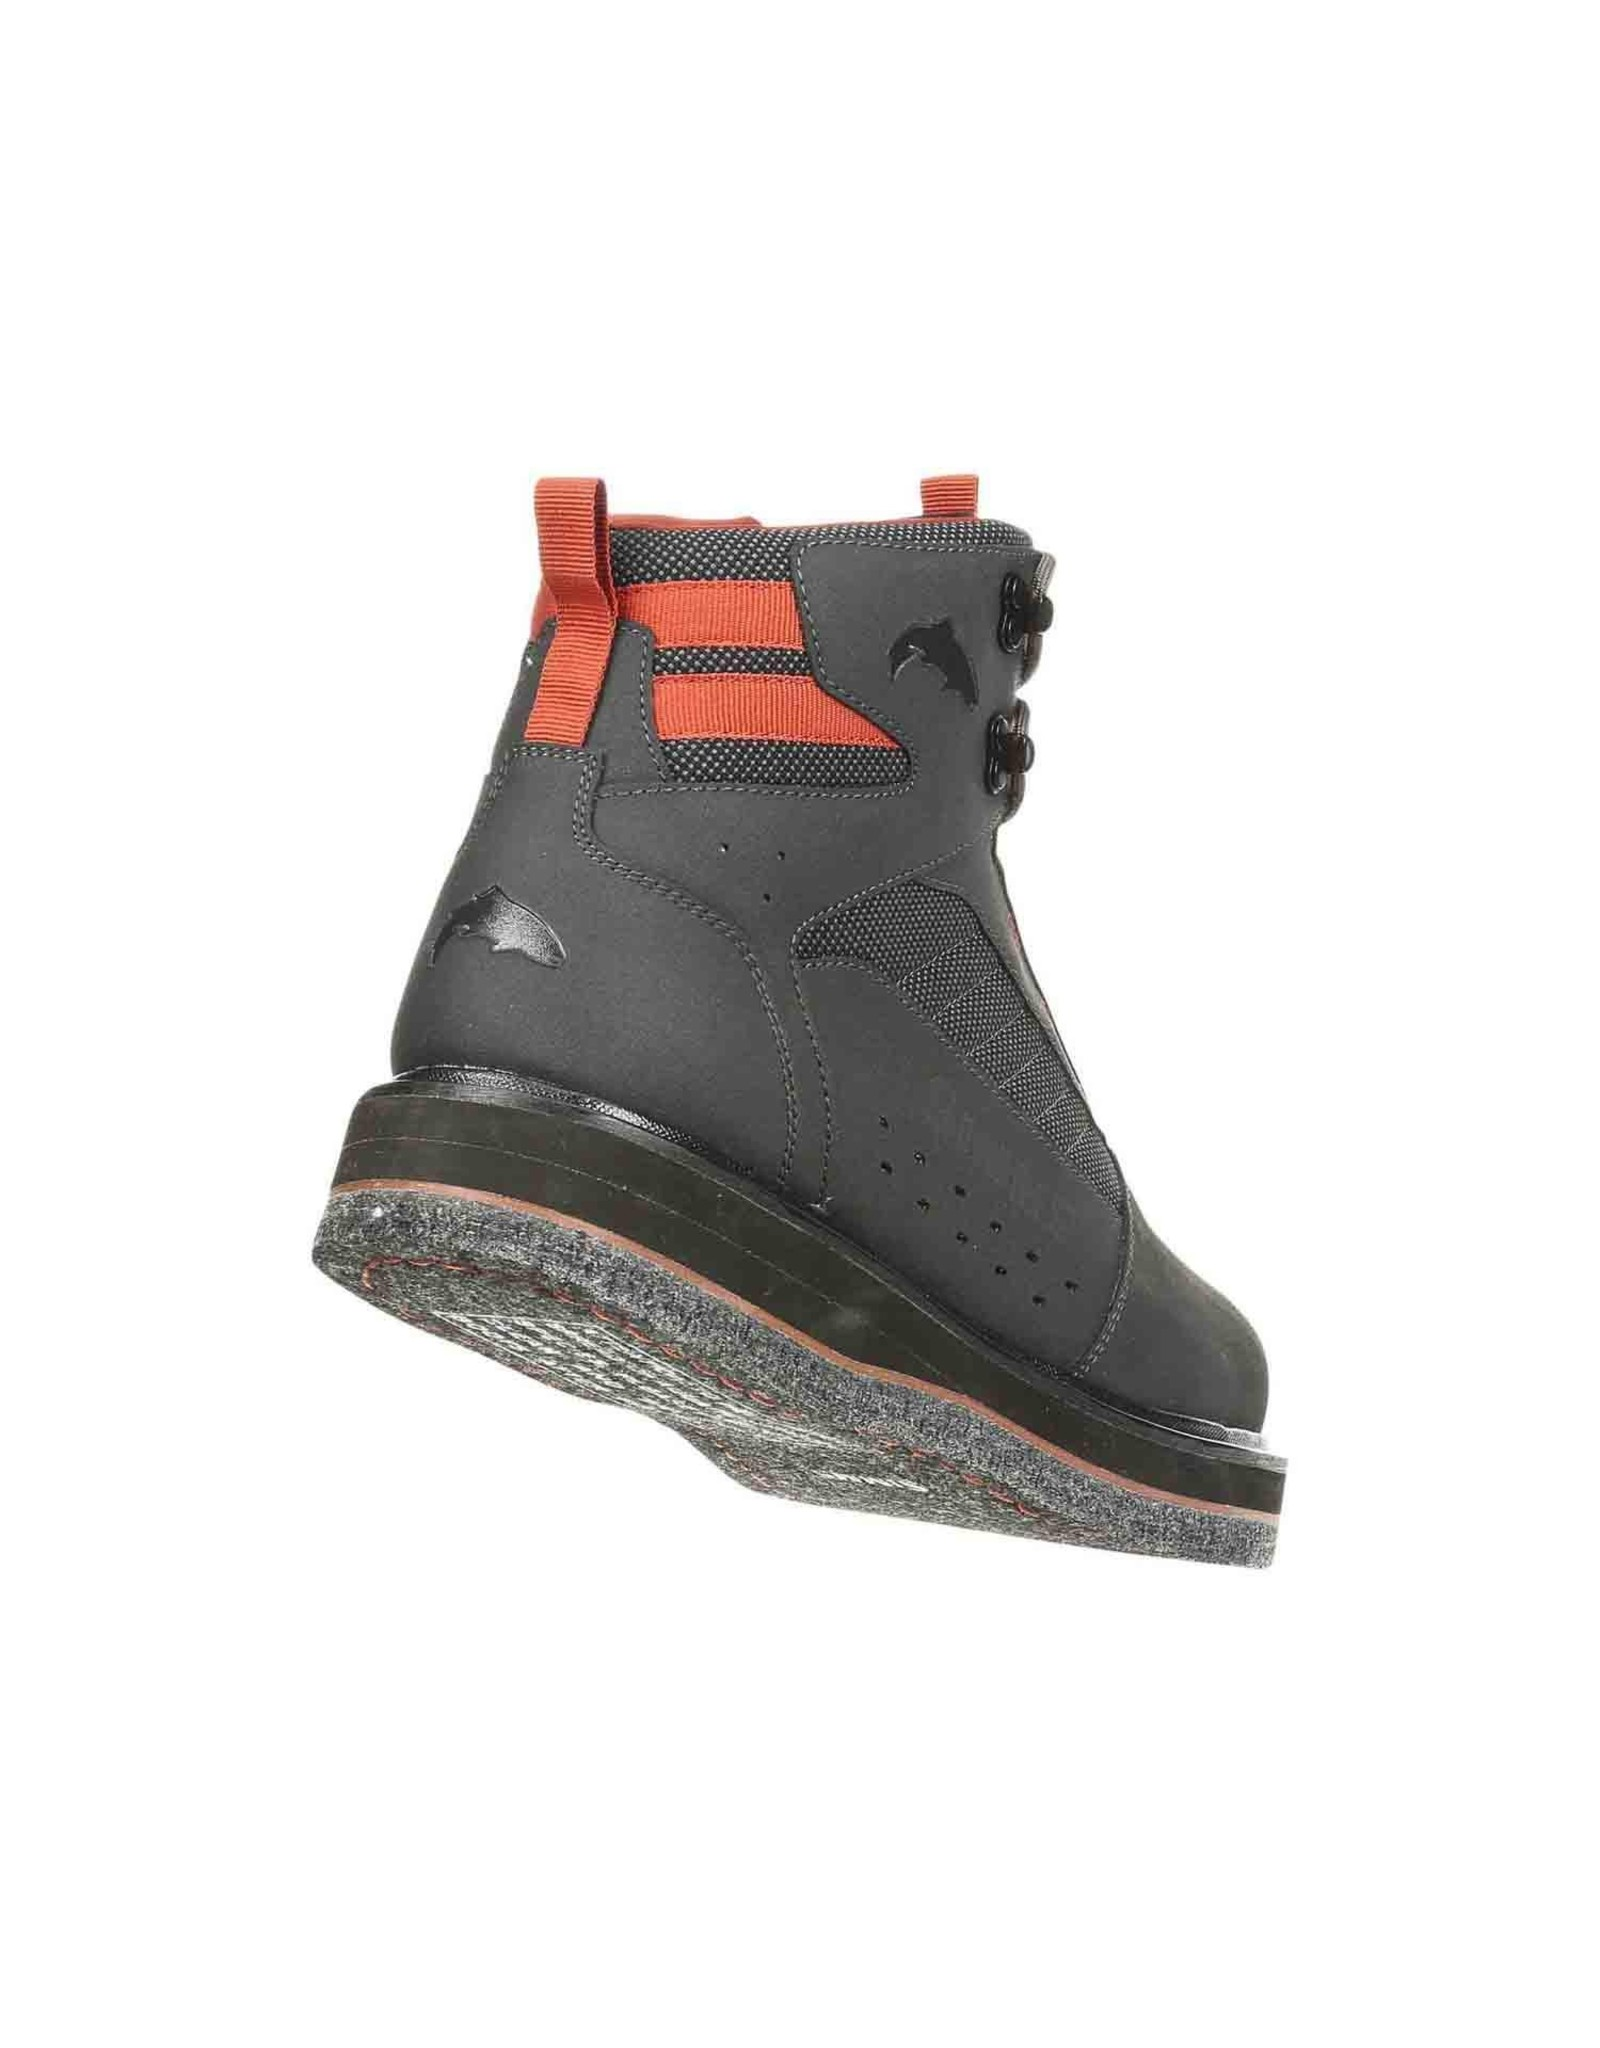 Simms Simms - Men's Tributary Wading Boot - Felt